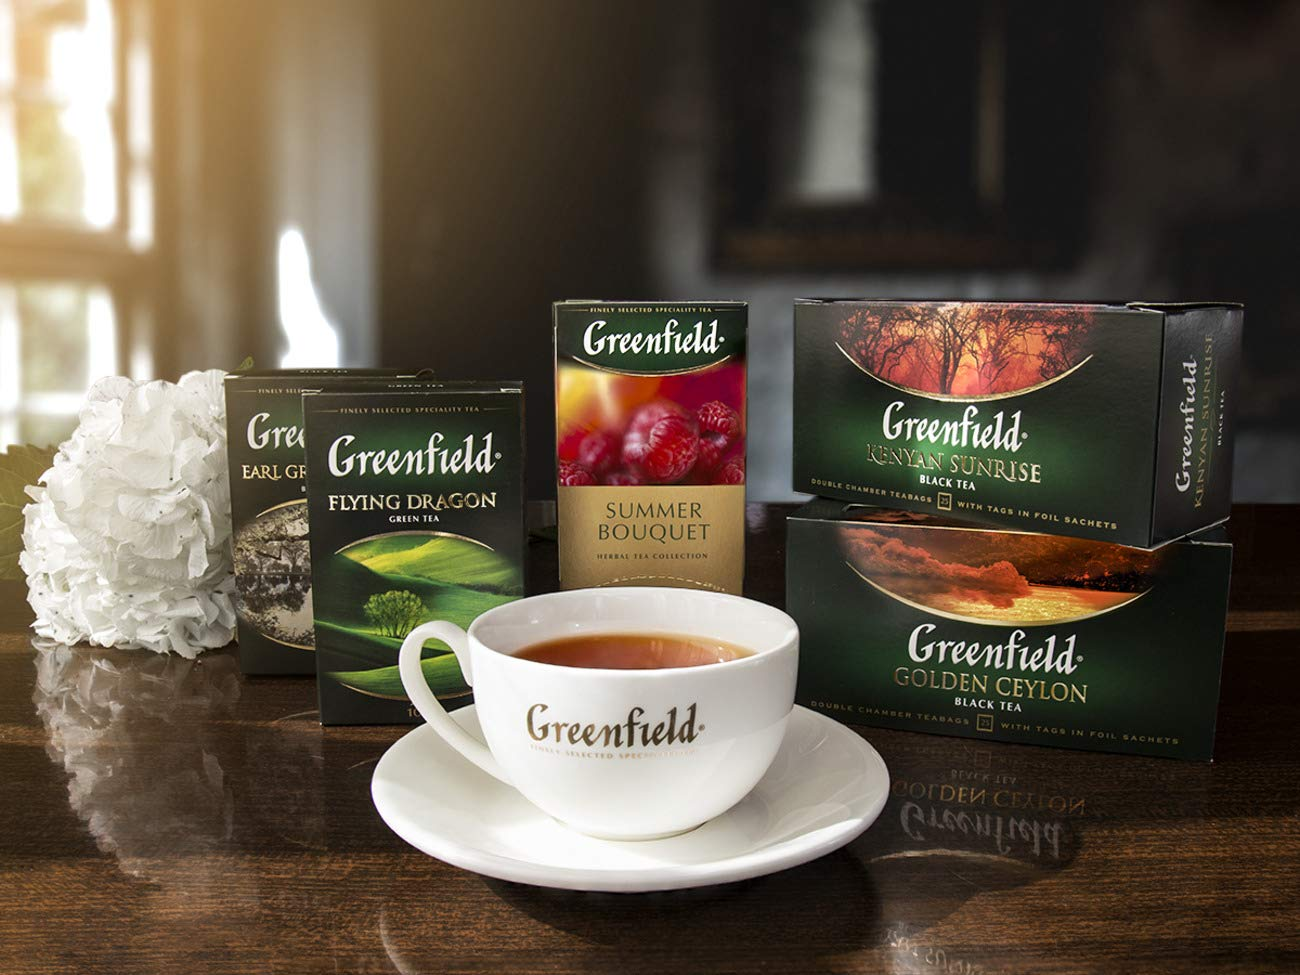 Greenfield Golden Ceylon Сlassic Collection Black Tea Finely Selected Speciality Tea 100 Double Chamber Teabags With Tags in Foil Sachets